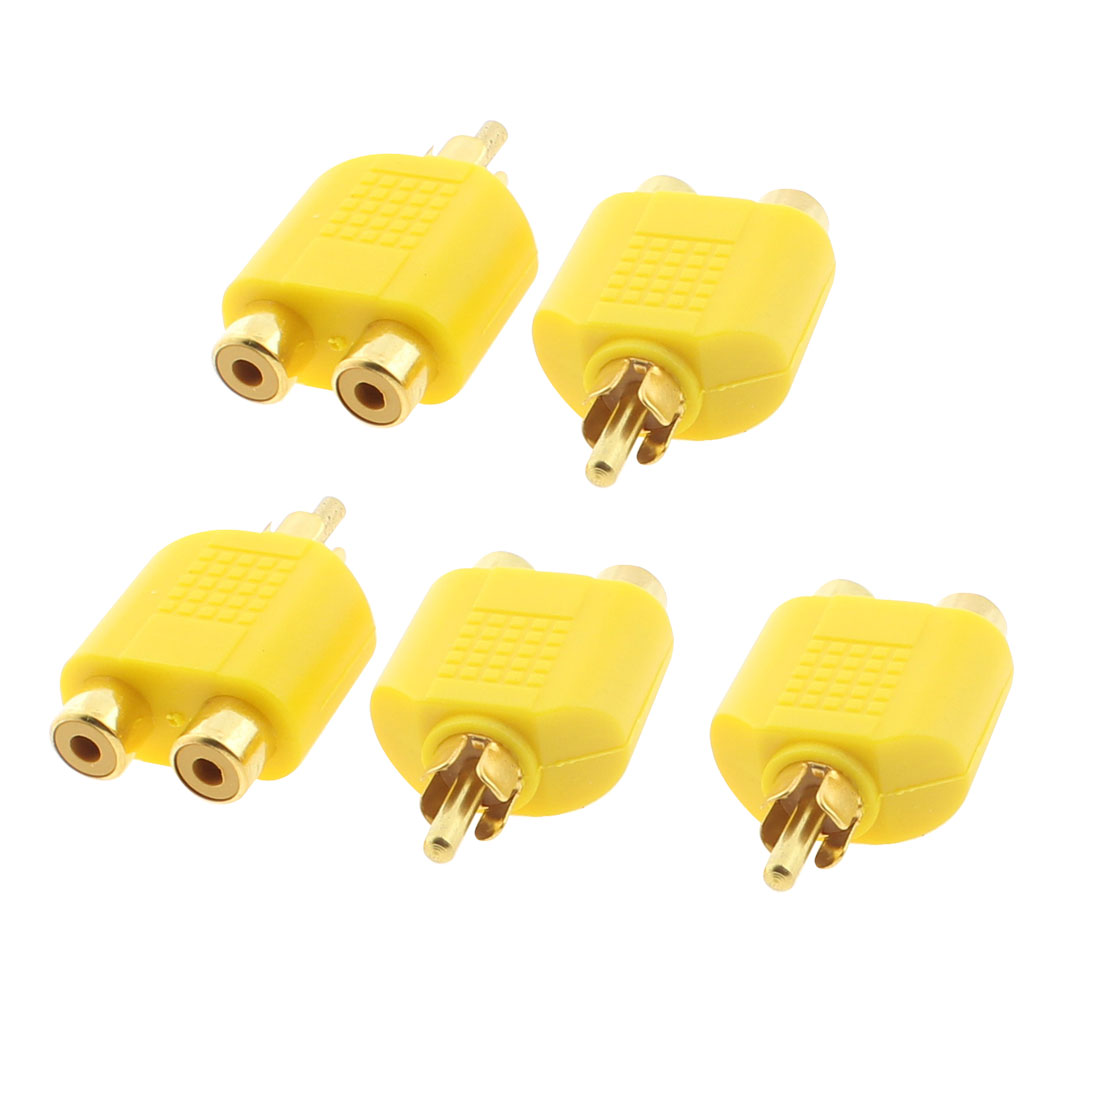 RCA Male to Double RCA Female Stereo Audio Adapter Coupler Converter Yellow 5pcs